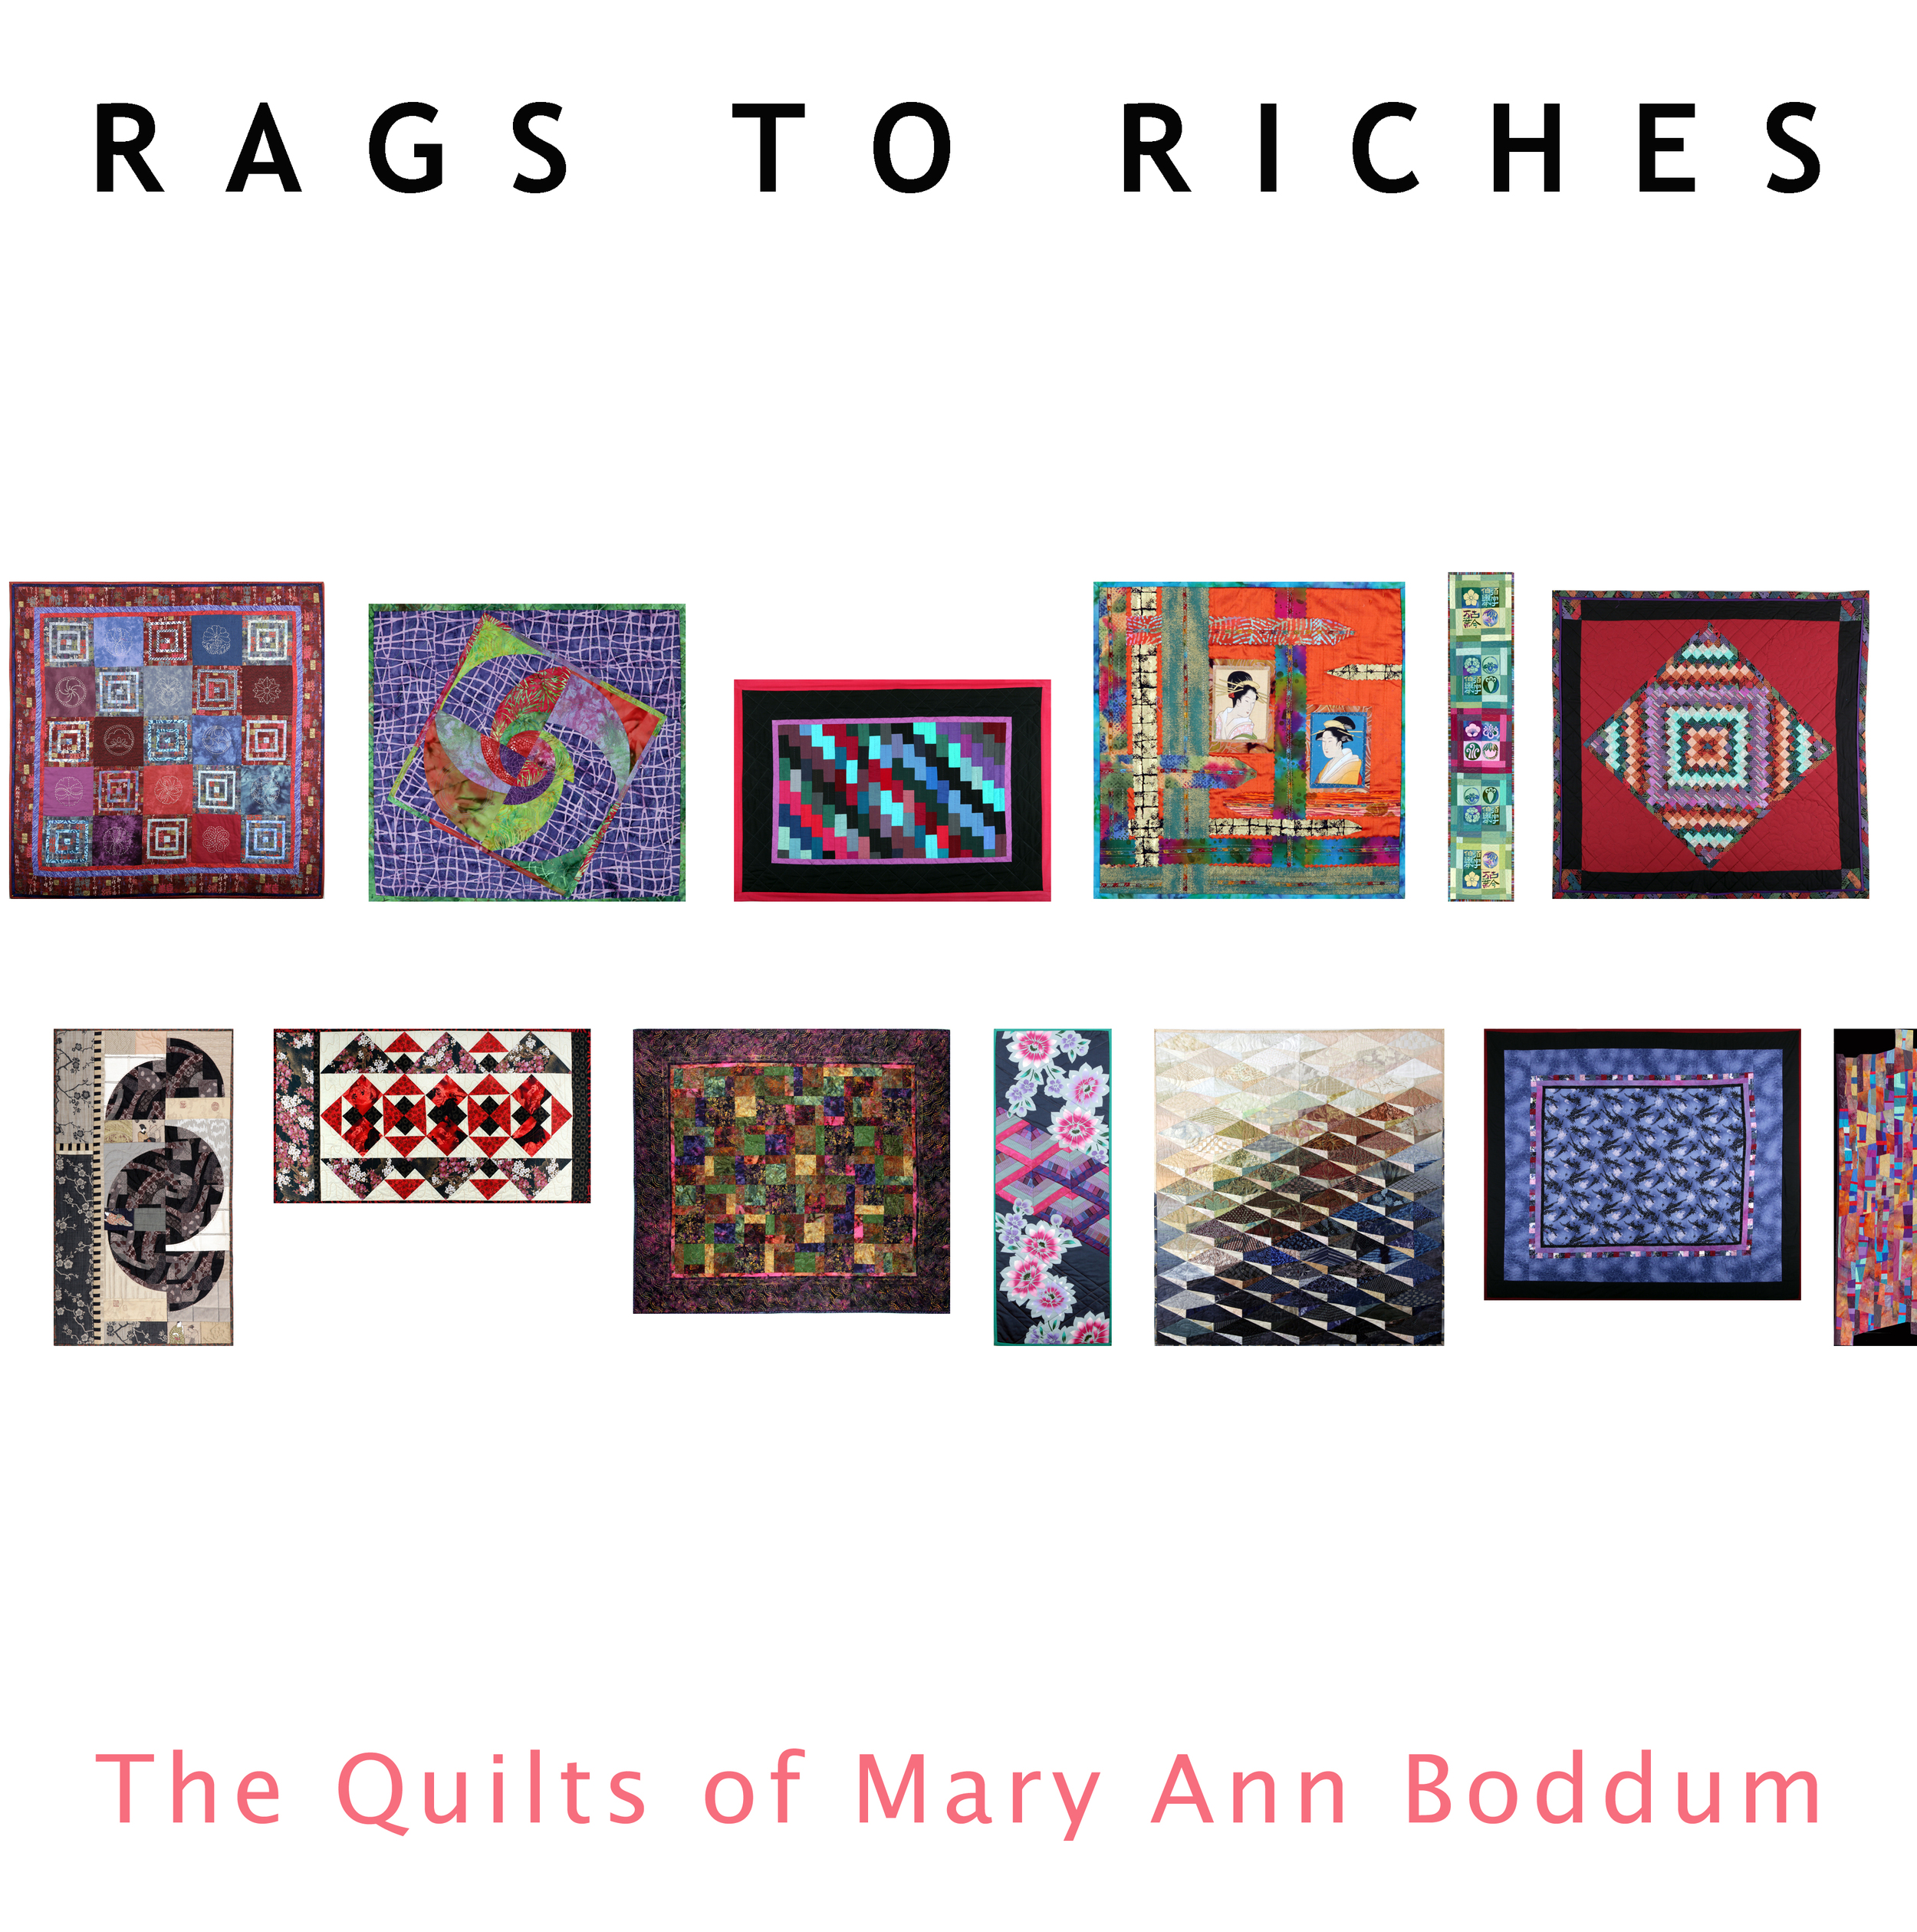 Rags to Riches-   The Quilts of Mary Anne Boddum    Hardcover. 12 by 12 inches, 184 pages    Monograph of American artist Mary Anne Boddum